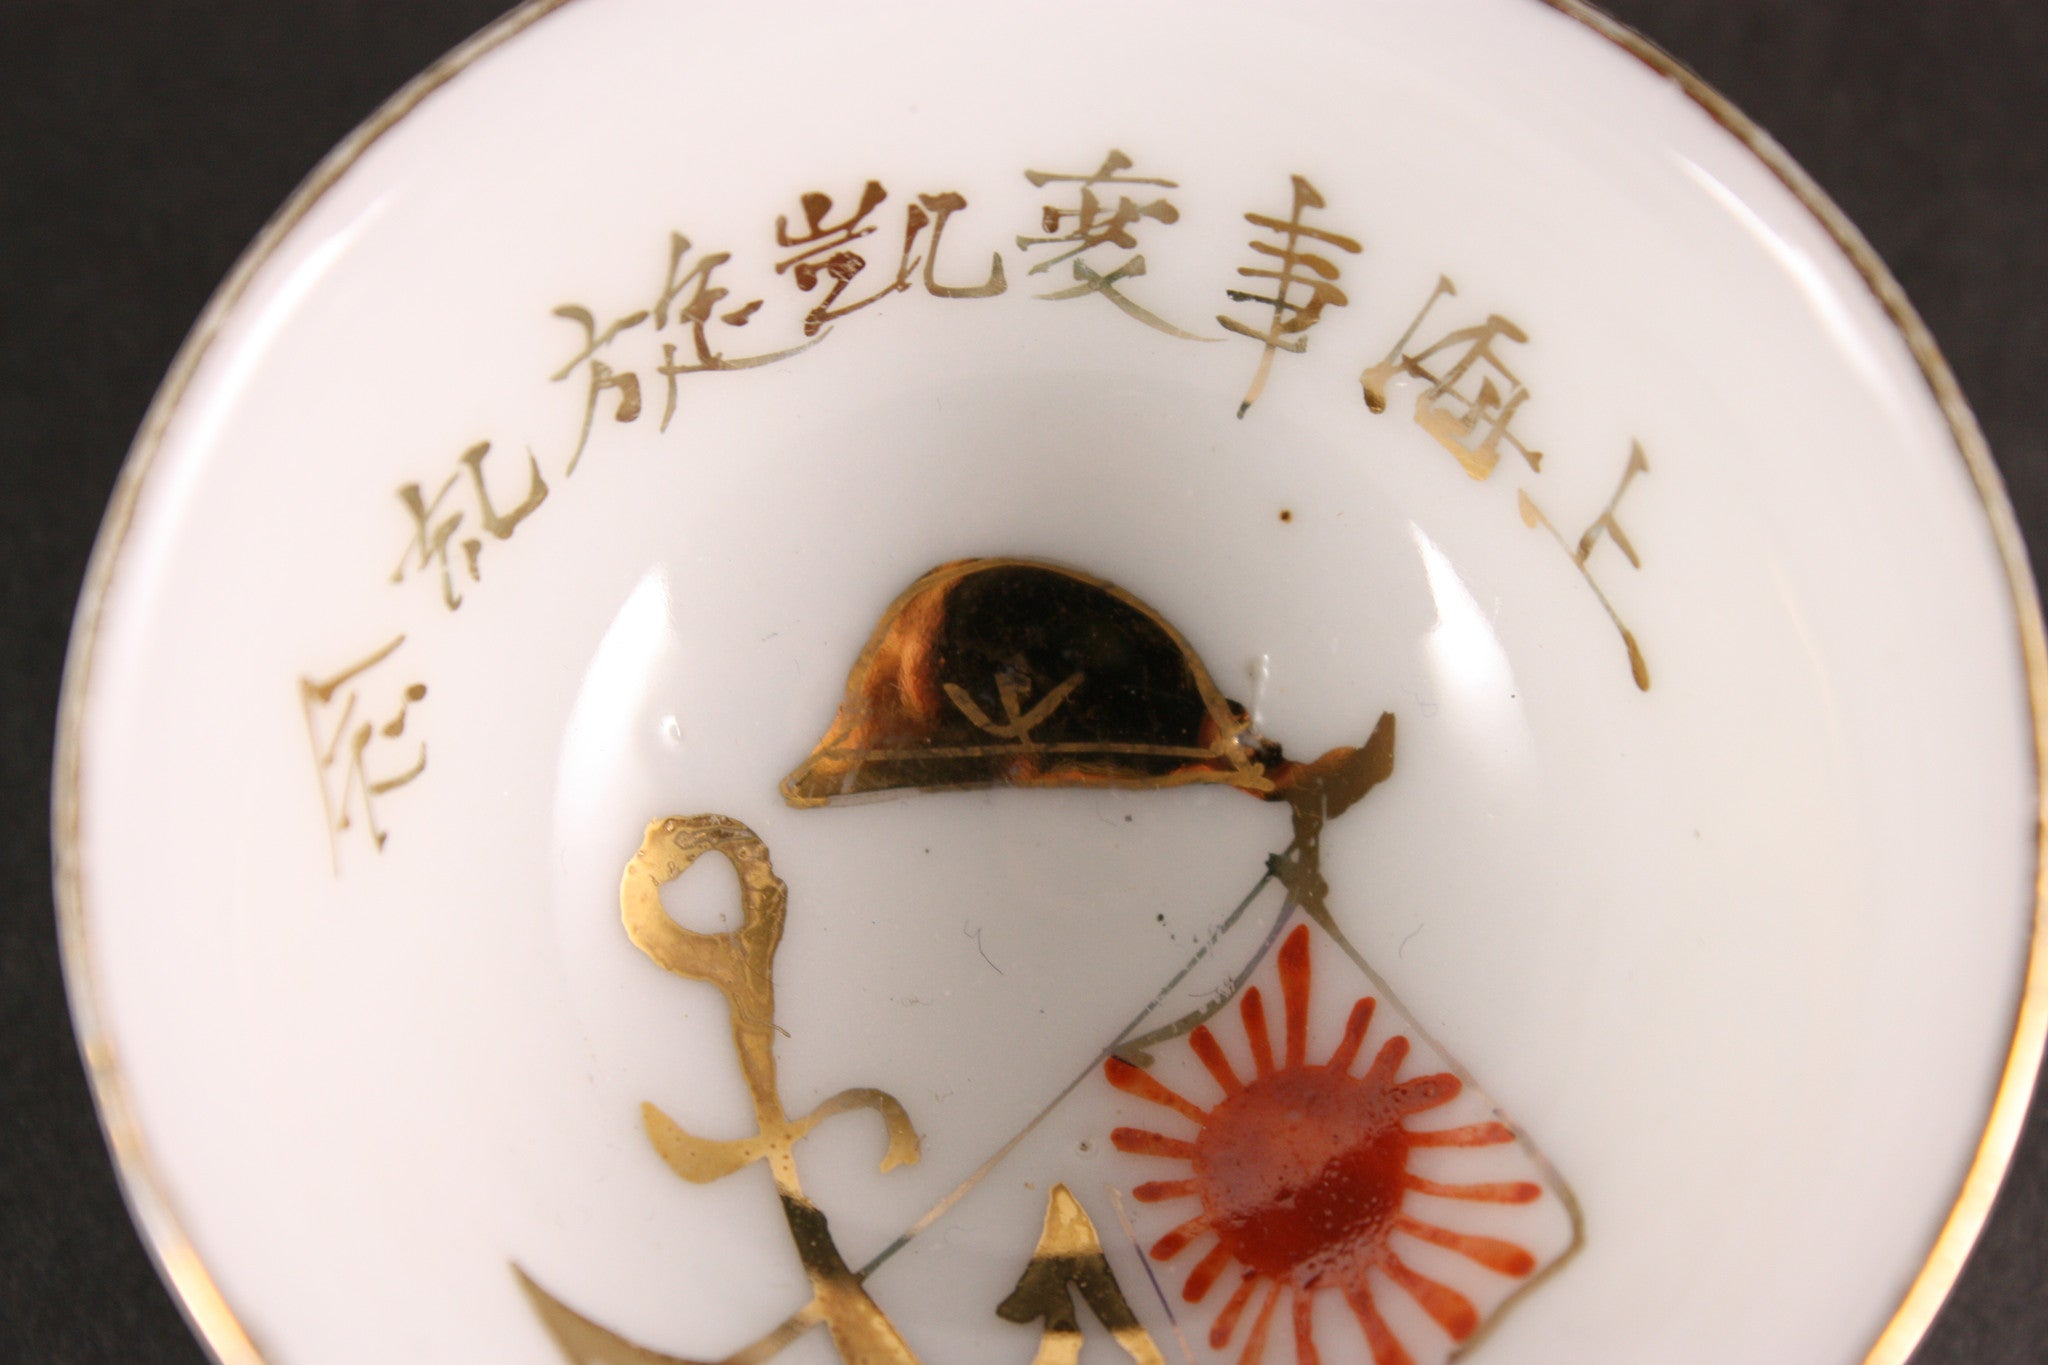 Very Rare Antique Japanese Military Marine 1932 Invasion of Shanghai Navy Sake Cup